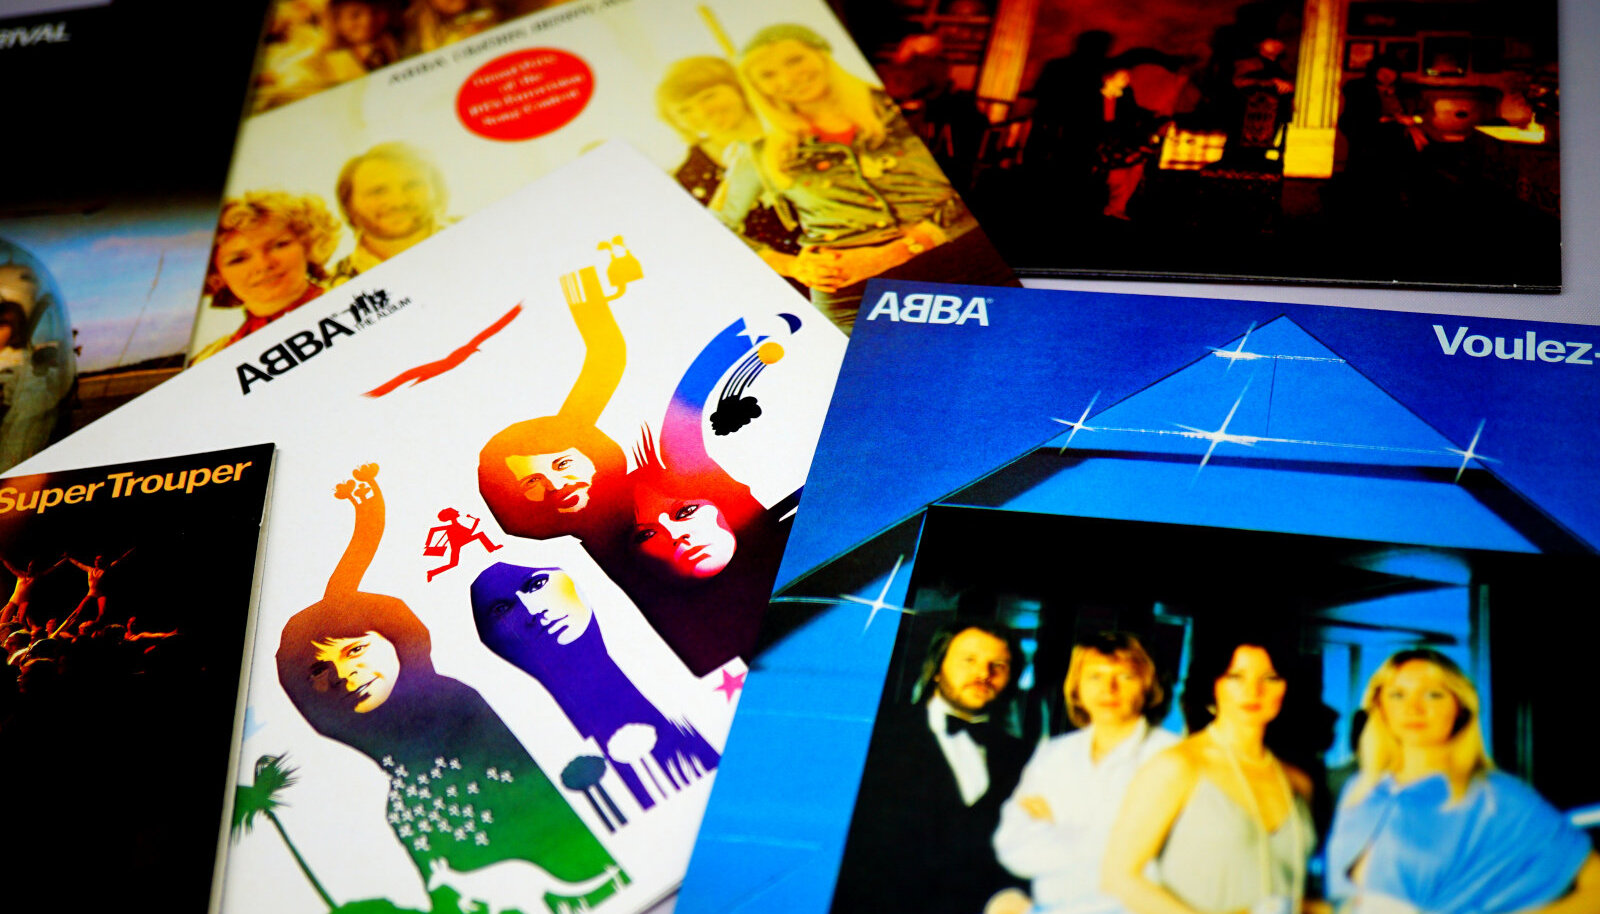 ABBA on tagasi